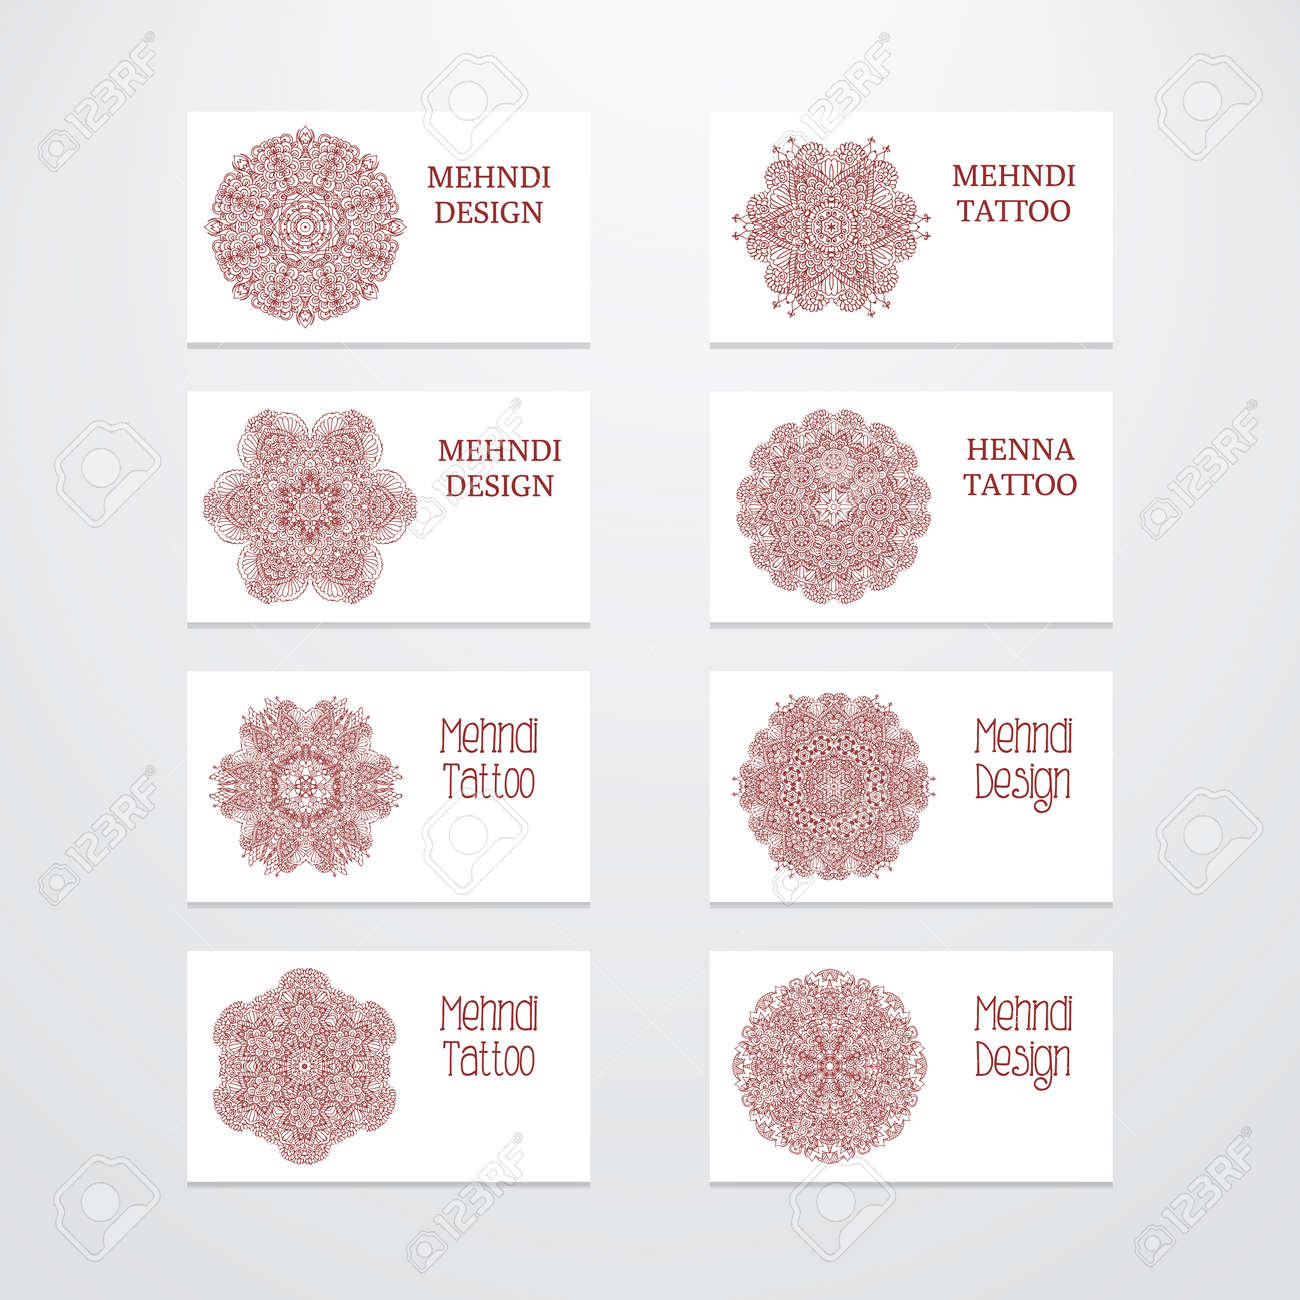 Set of business card templates vintage decorative round patterns illustration set of business card templates vintage decorative round patterns indian arabic ornaments mandala mehndi henna tattoo design friedricerecipe Choice Image